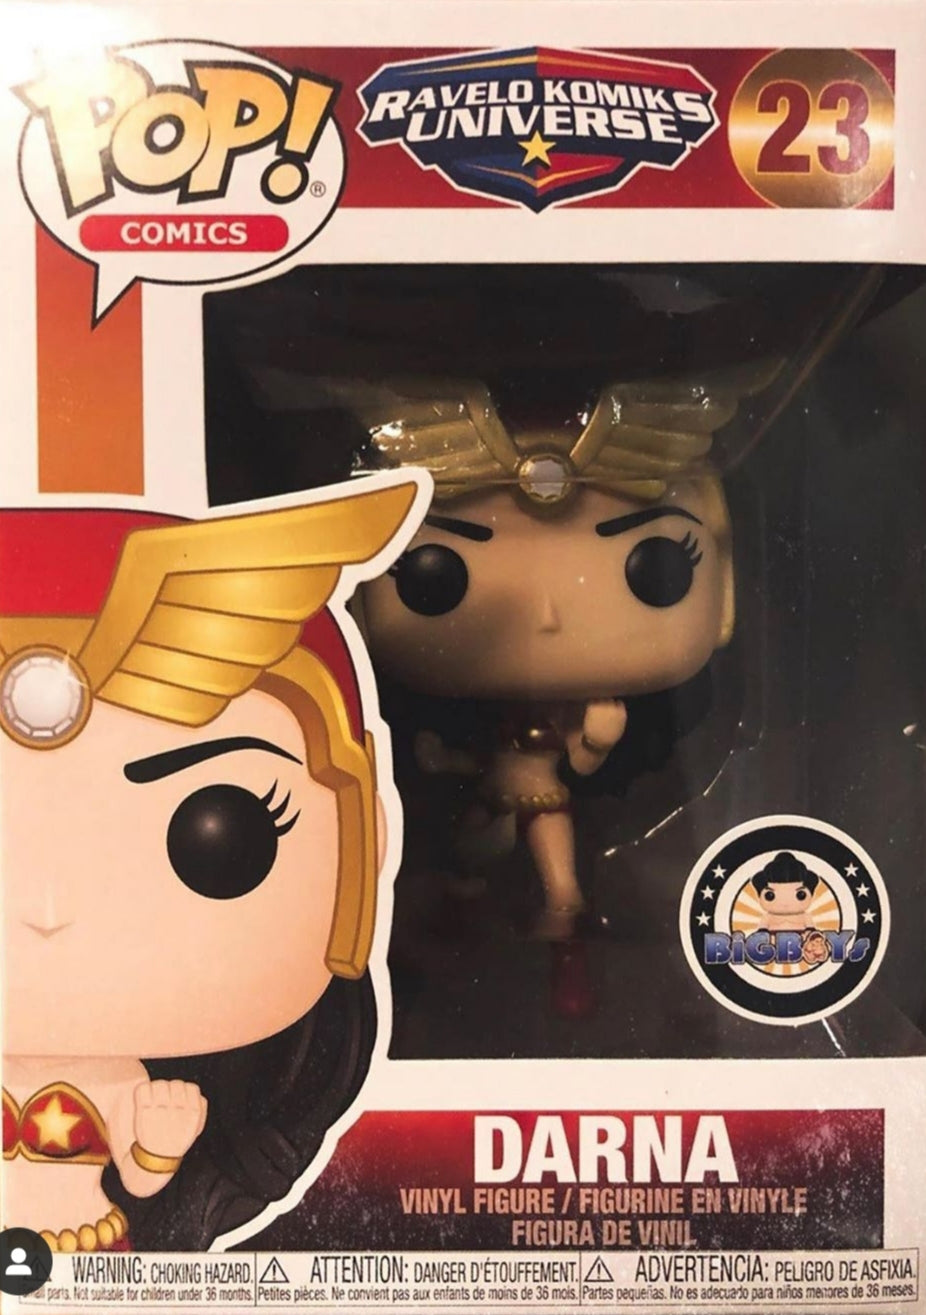 Funko Pop Ravelo Komiks Universe Darna Big Boy Exclusive Mint